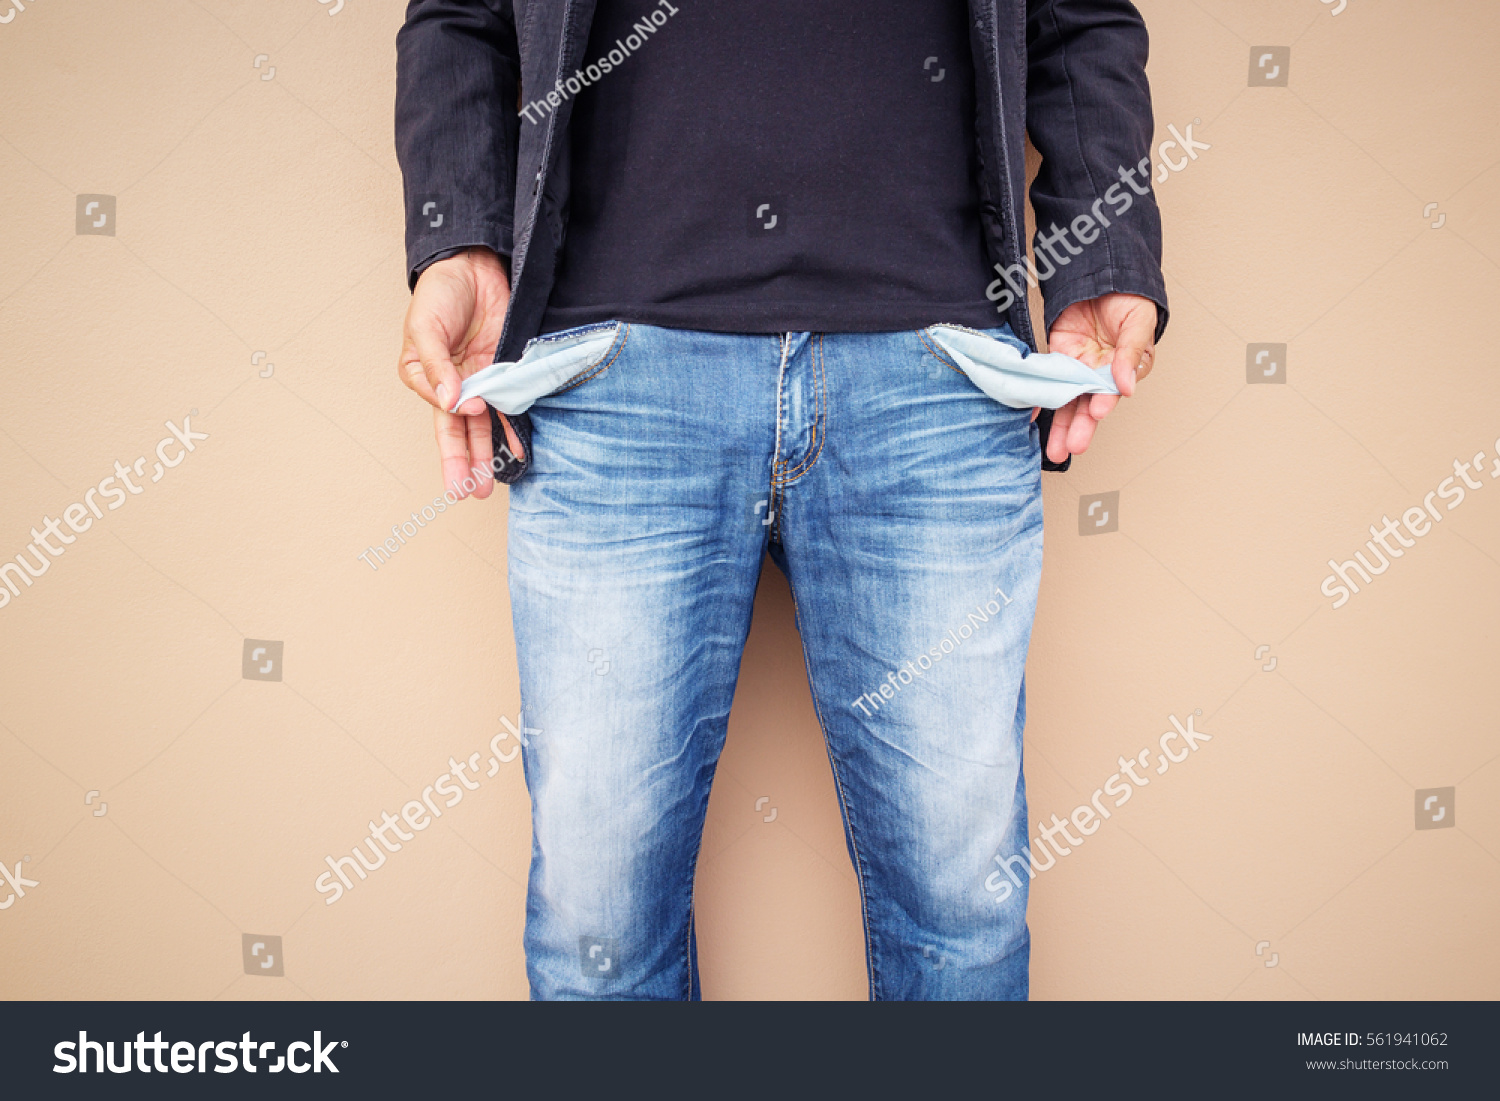 Man with empty out-turned pockets